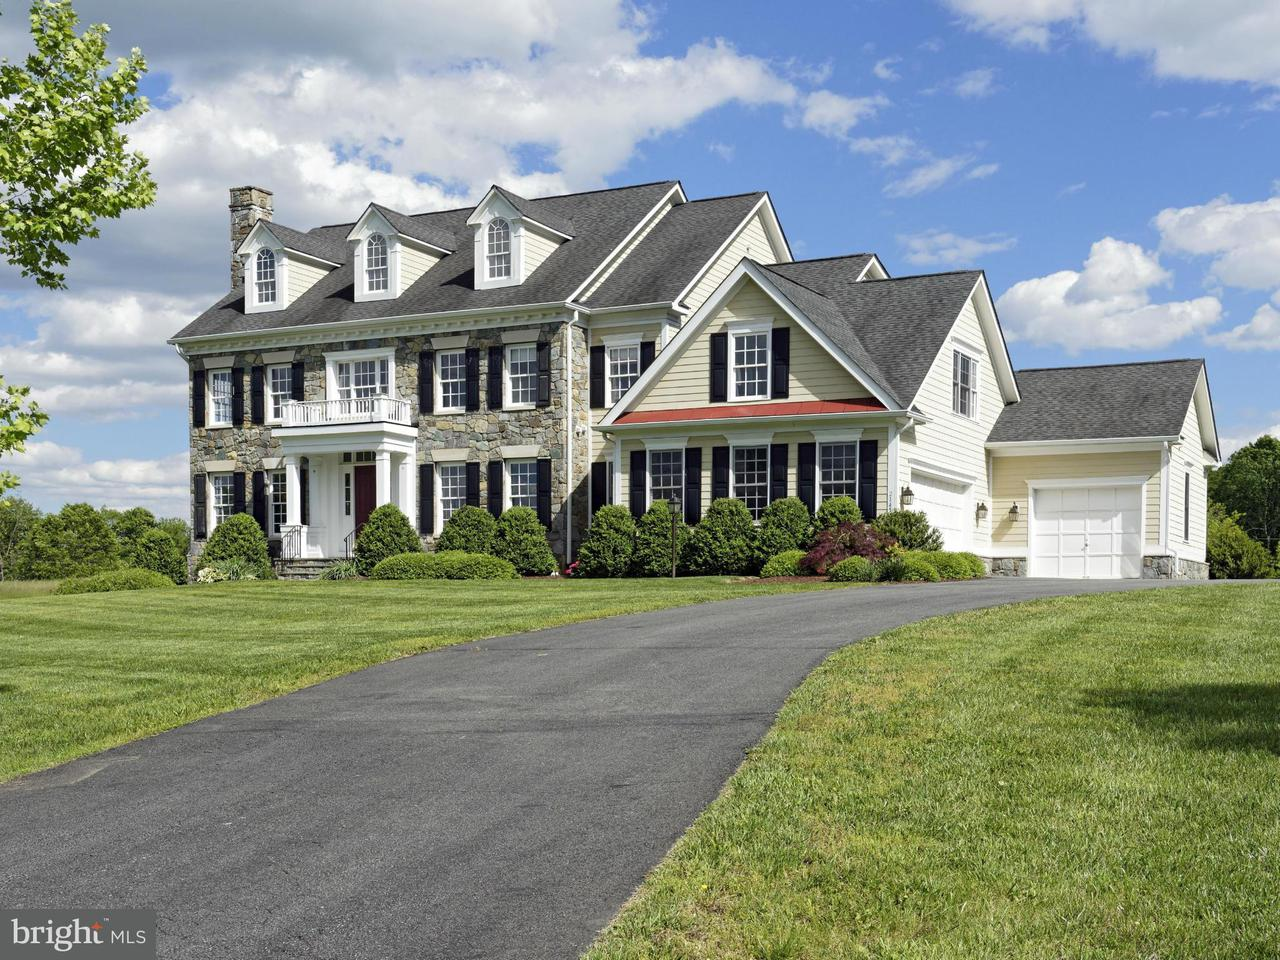 Single Family Home for Sale at 21450 Rosedown Court 21450 Rosedown Court Middleburg, Virginia 20117 United States